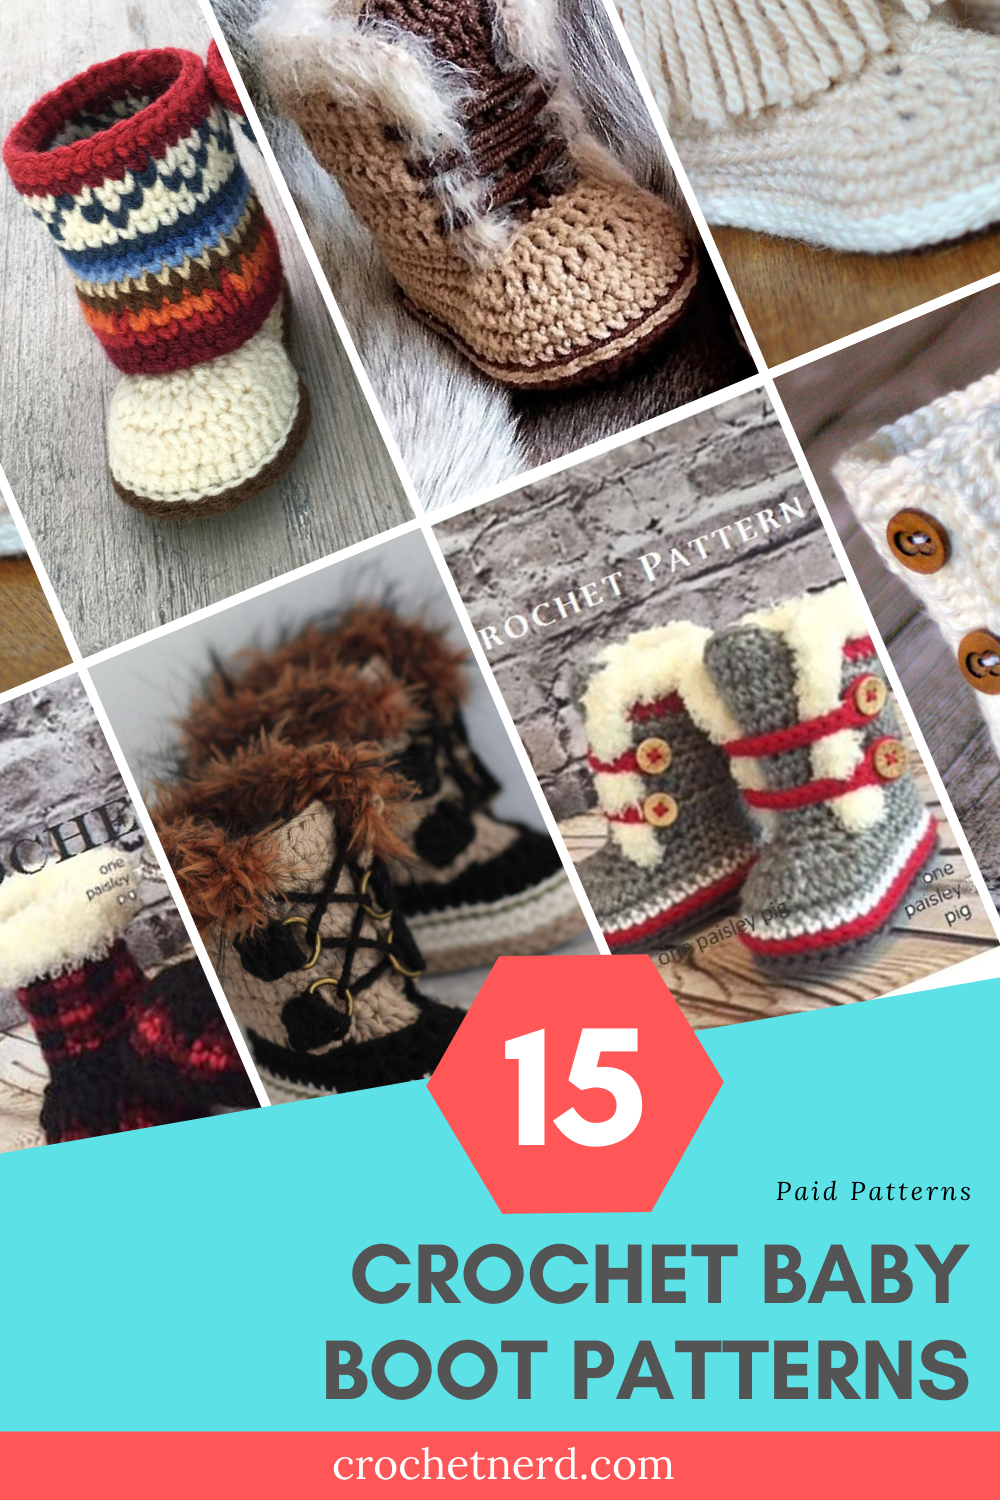 patterns for crochet baby boots